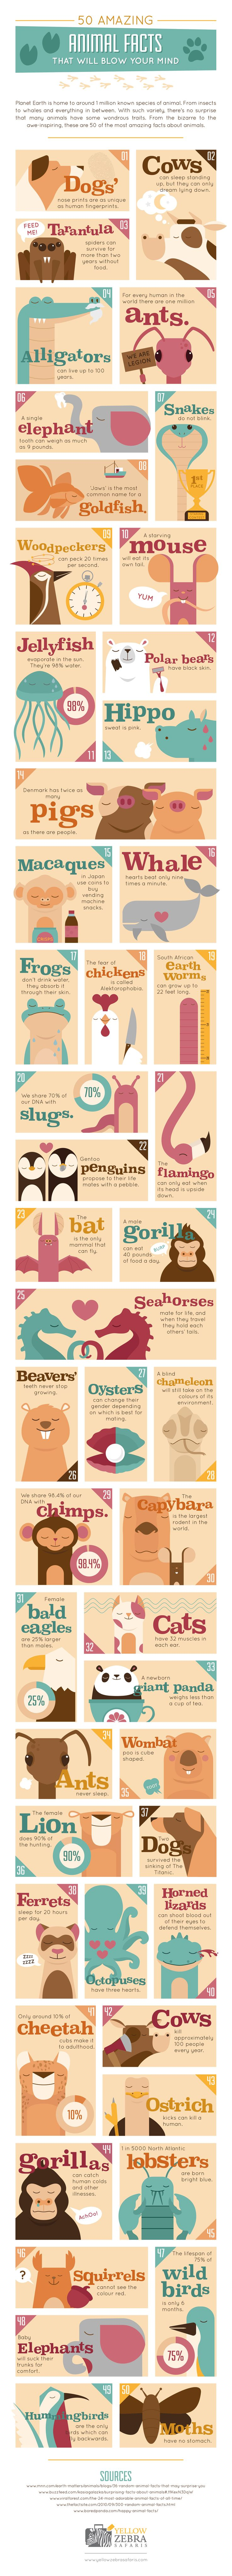 50 Amazing Animal Facts That Will Blow Your Mind #Infographic #Animals #Facts